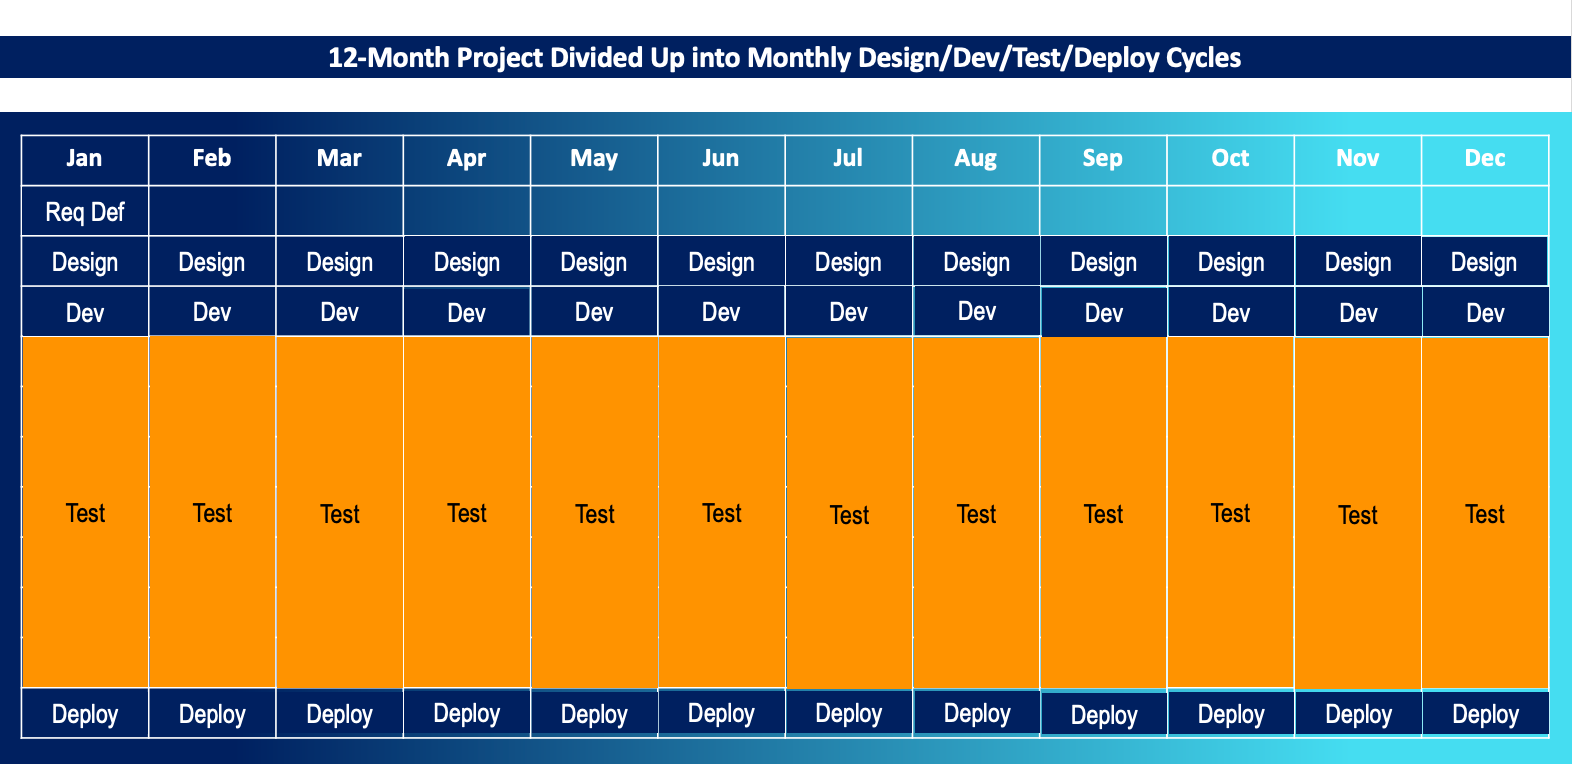 12-Month Project Divided Up into Short Sprints